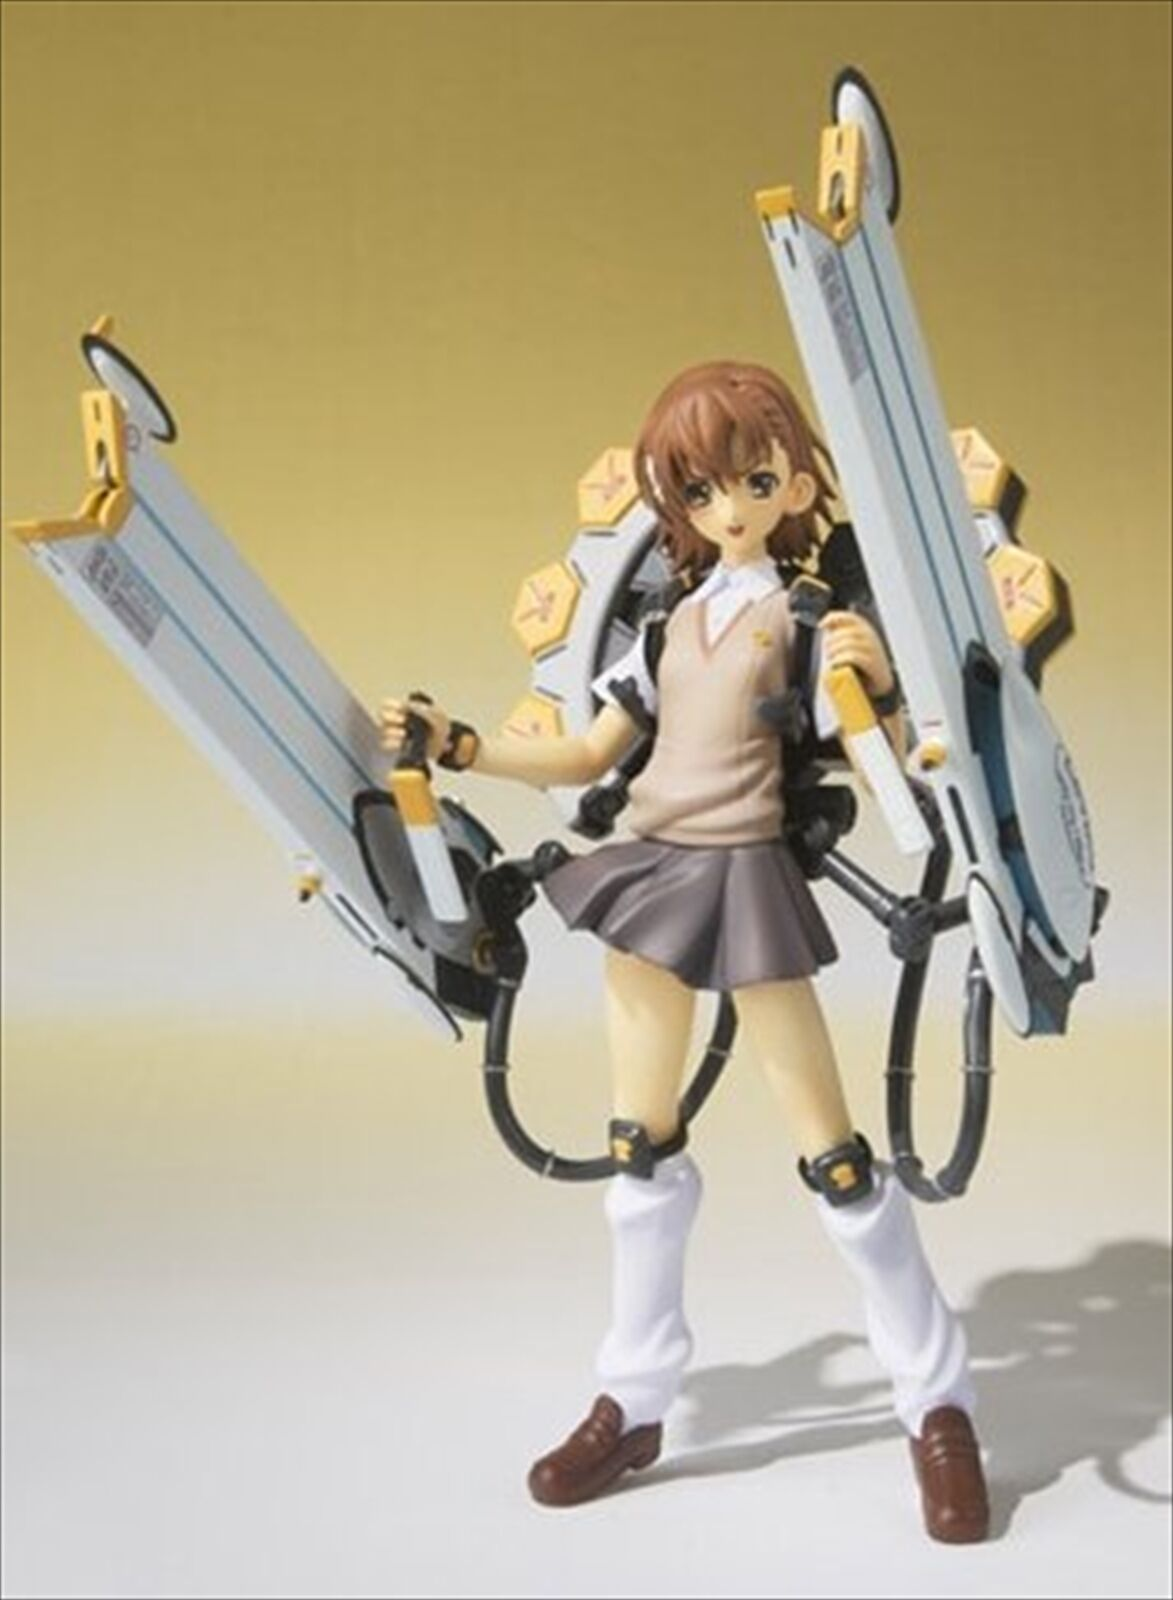 Bandai Armor Girls Project AGP These days of Musumecha MIKOTO MISAKA Figure